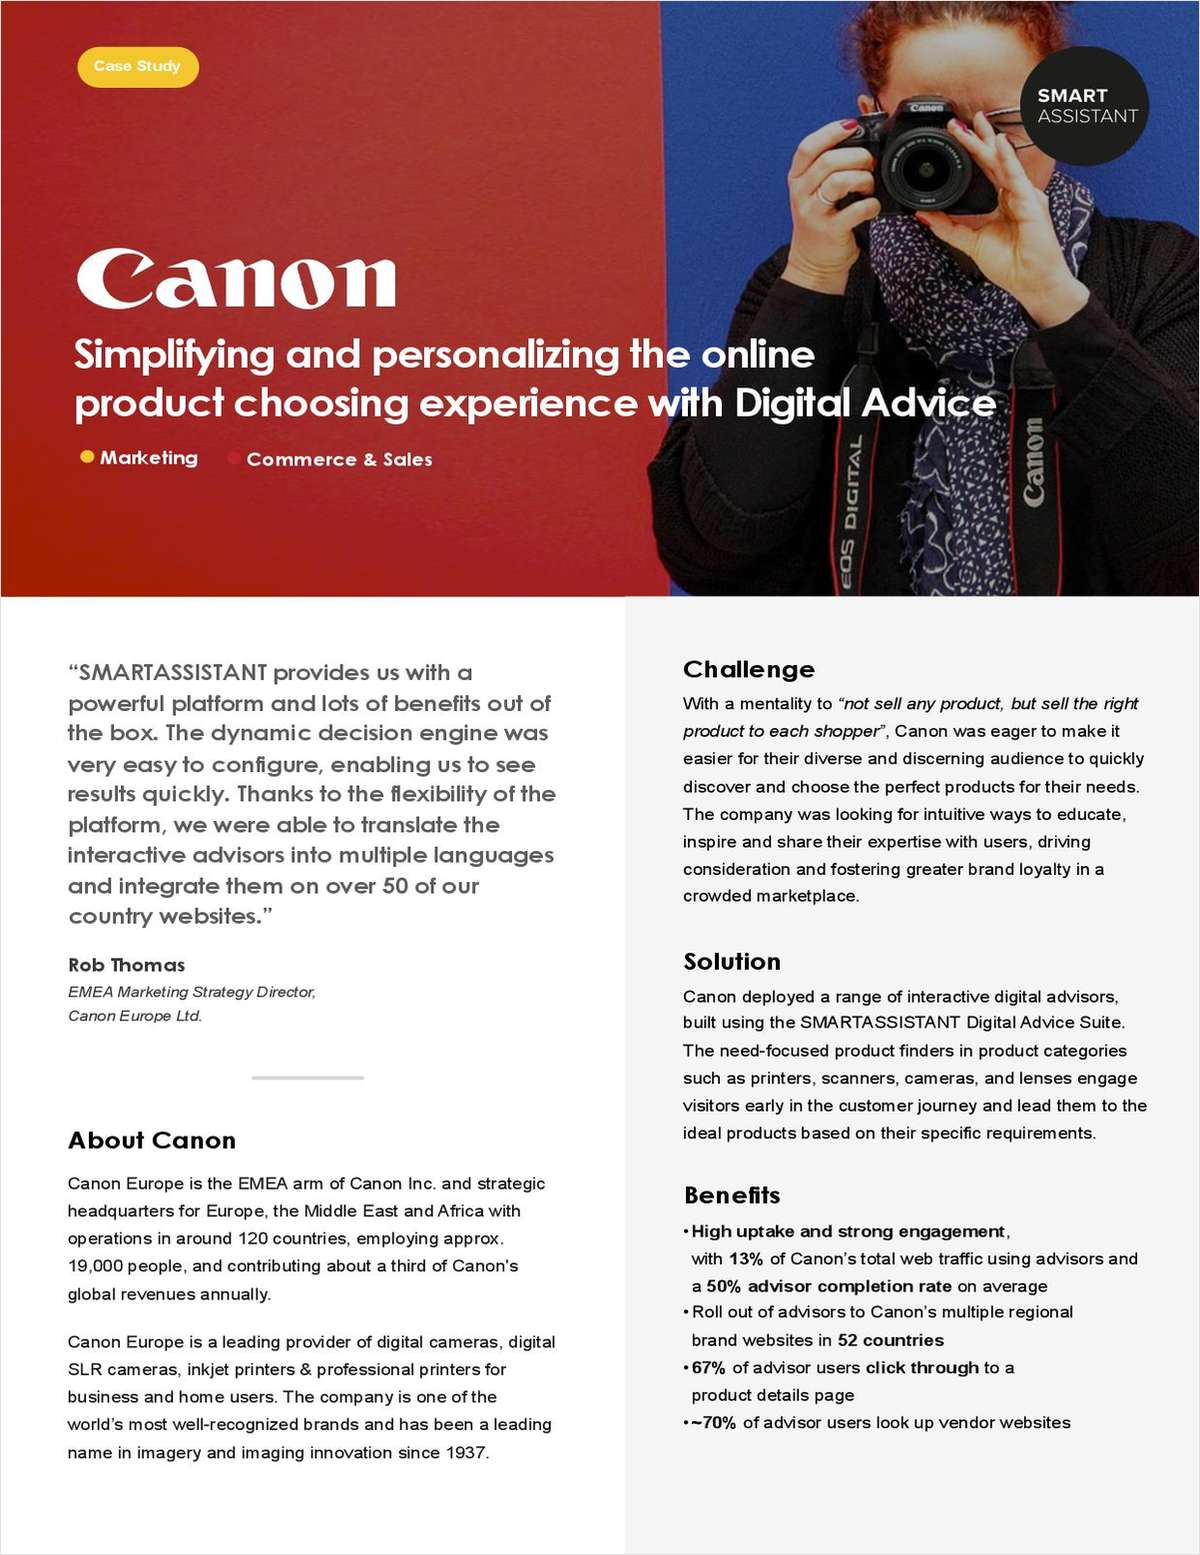 Helping Shoppers Choose: How Canon Boosts Brand Consideration Across 52 Country Websites